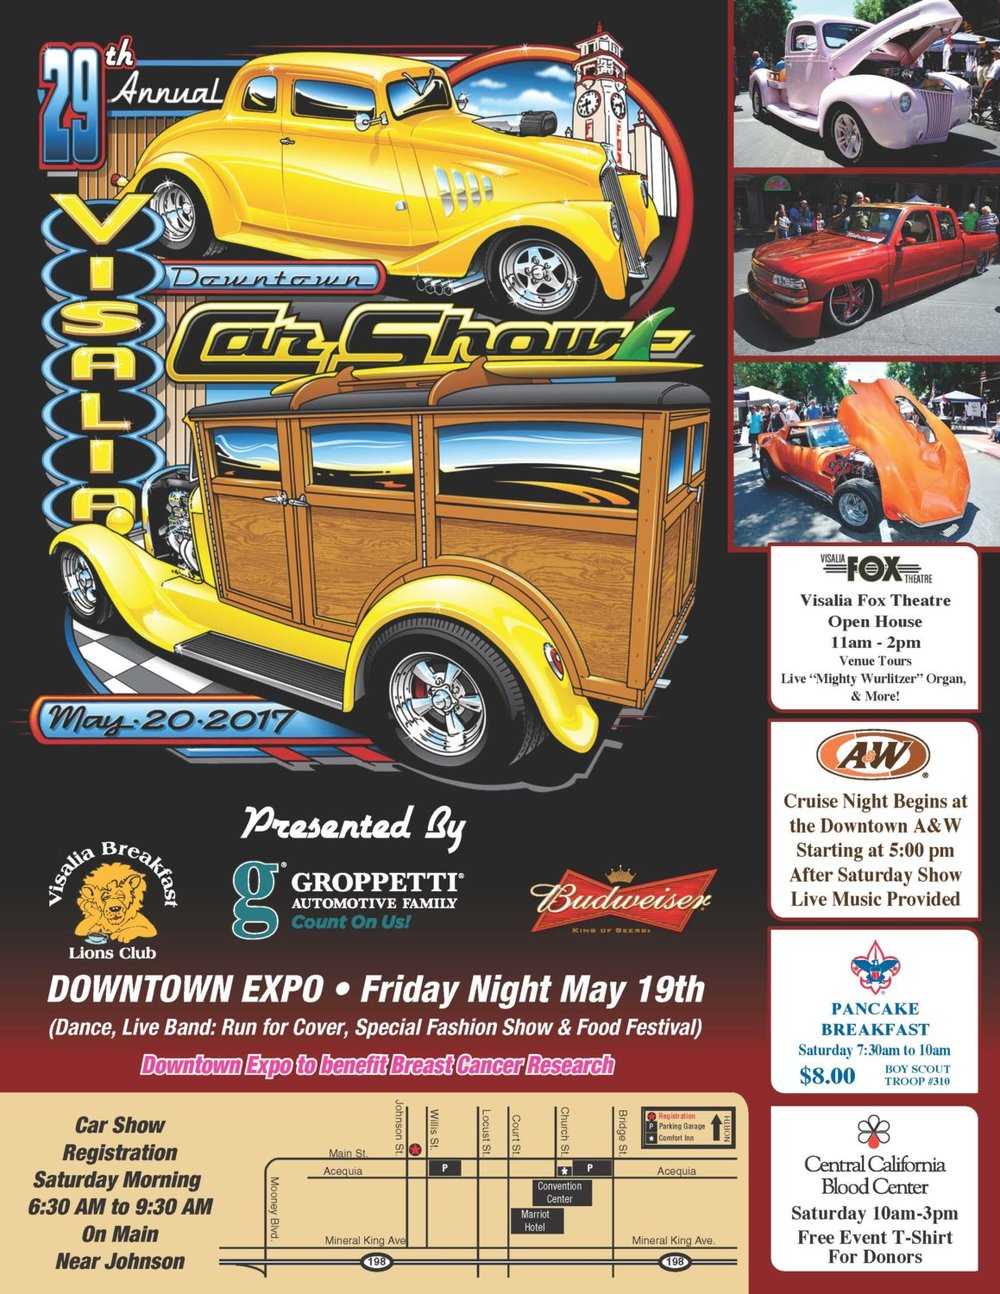 94039-DT-Car-Show-Flyer_2017-5_Page_1-1159x1500.jpg